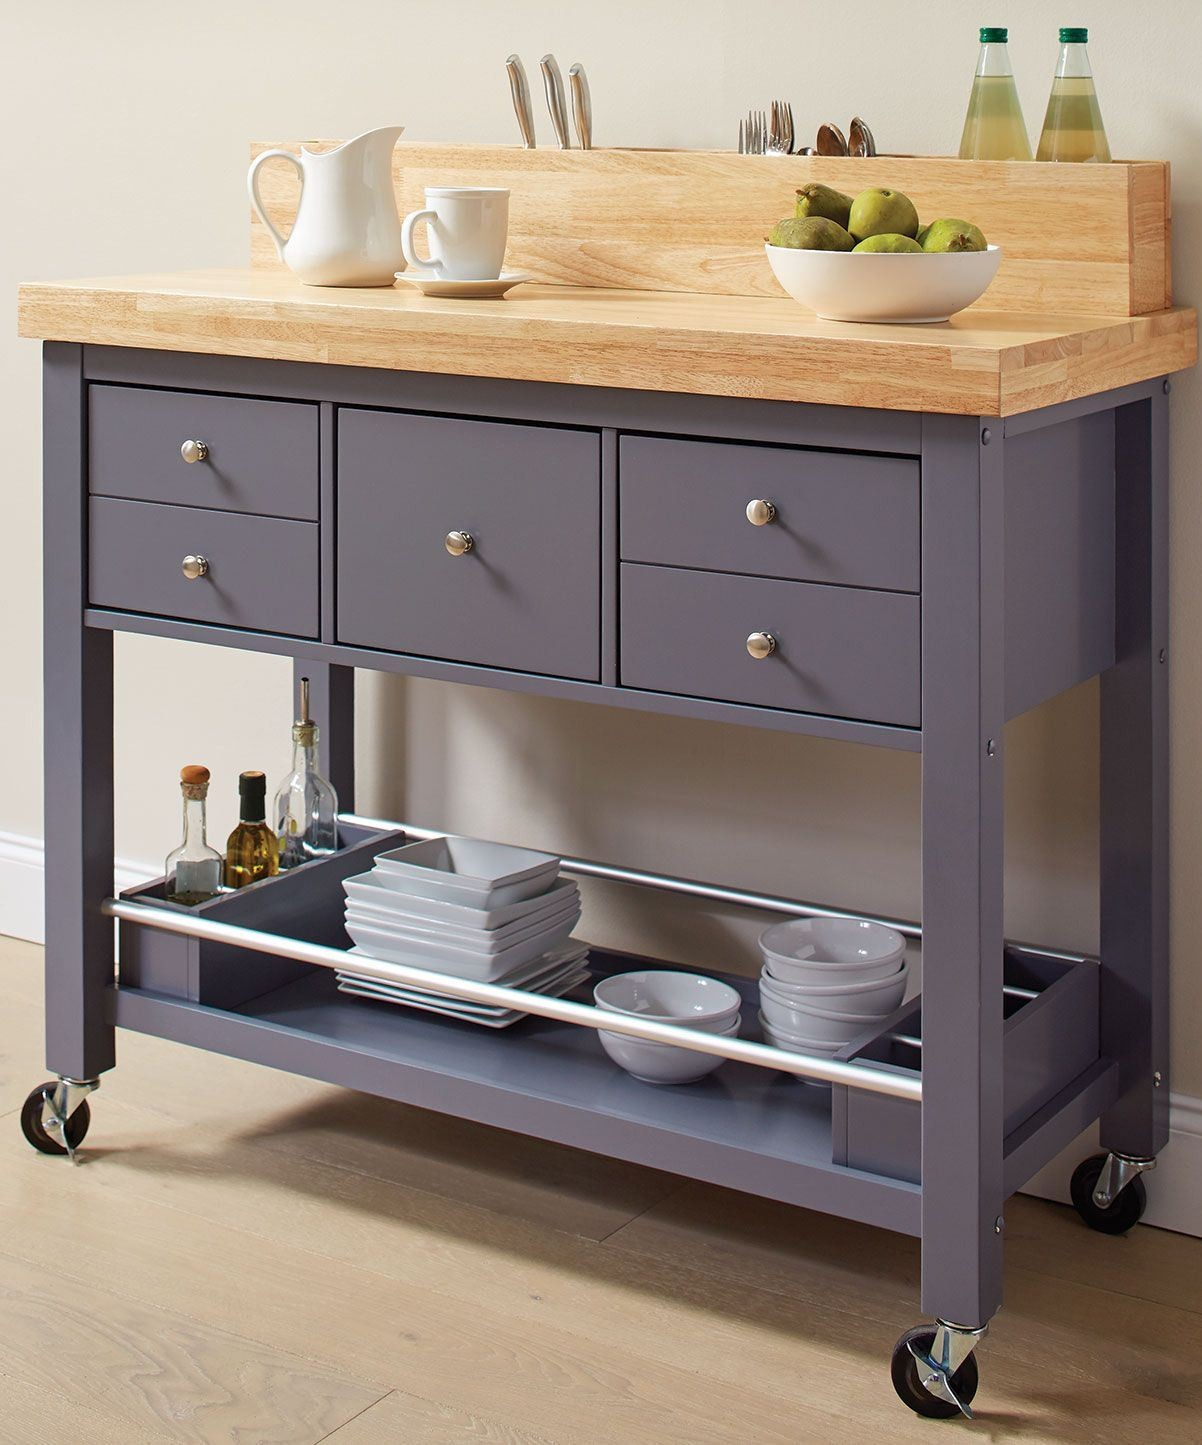 Grey Kitchen Furniture: Natural And Grey Kitchen Cart From Coaster